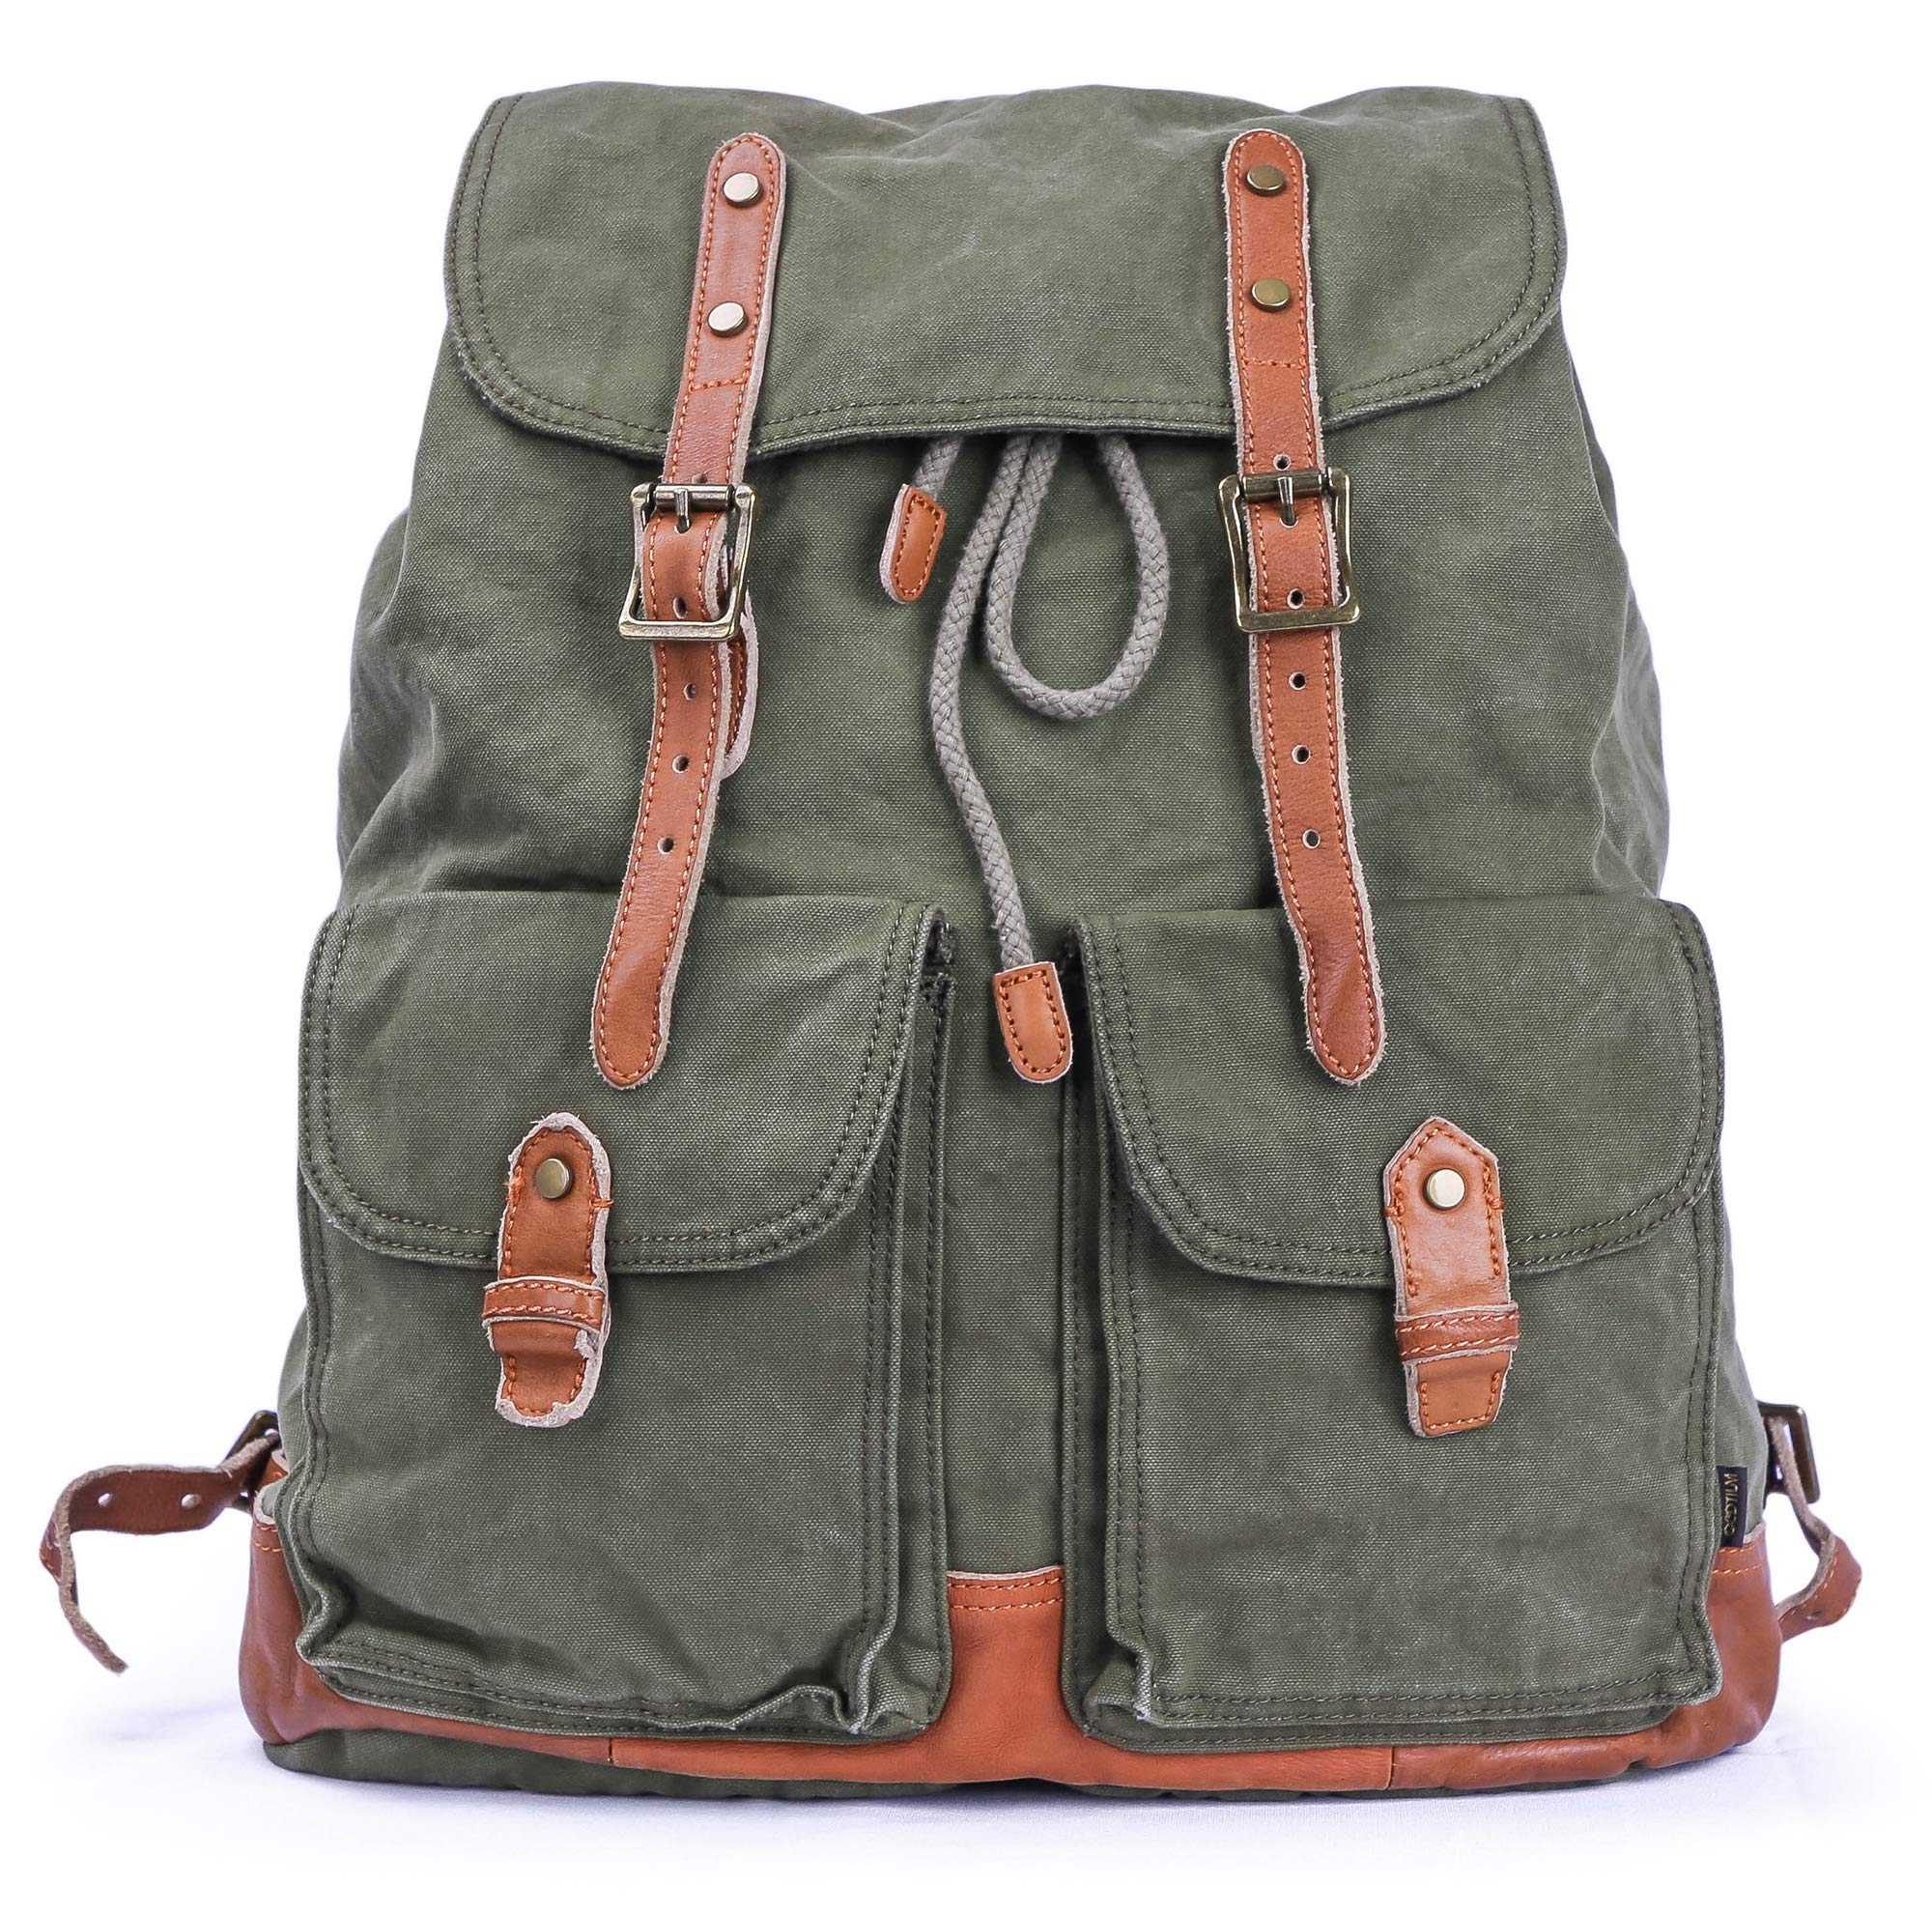 Gootium Specially Washed Vintage Canvas Backpack Rucksack, Green